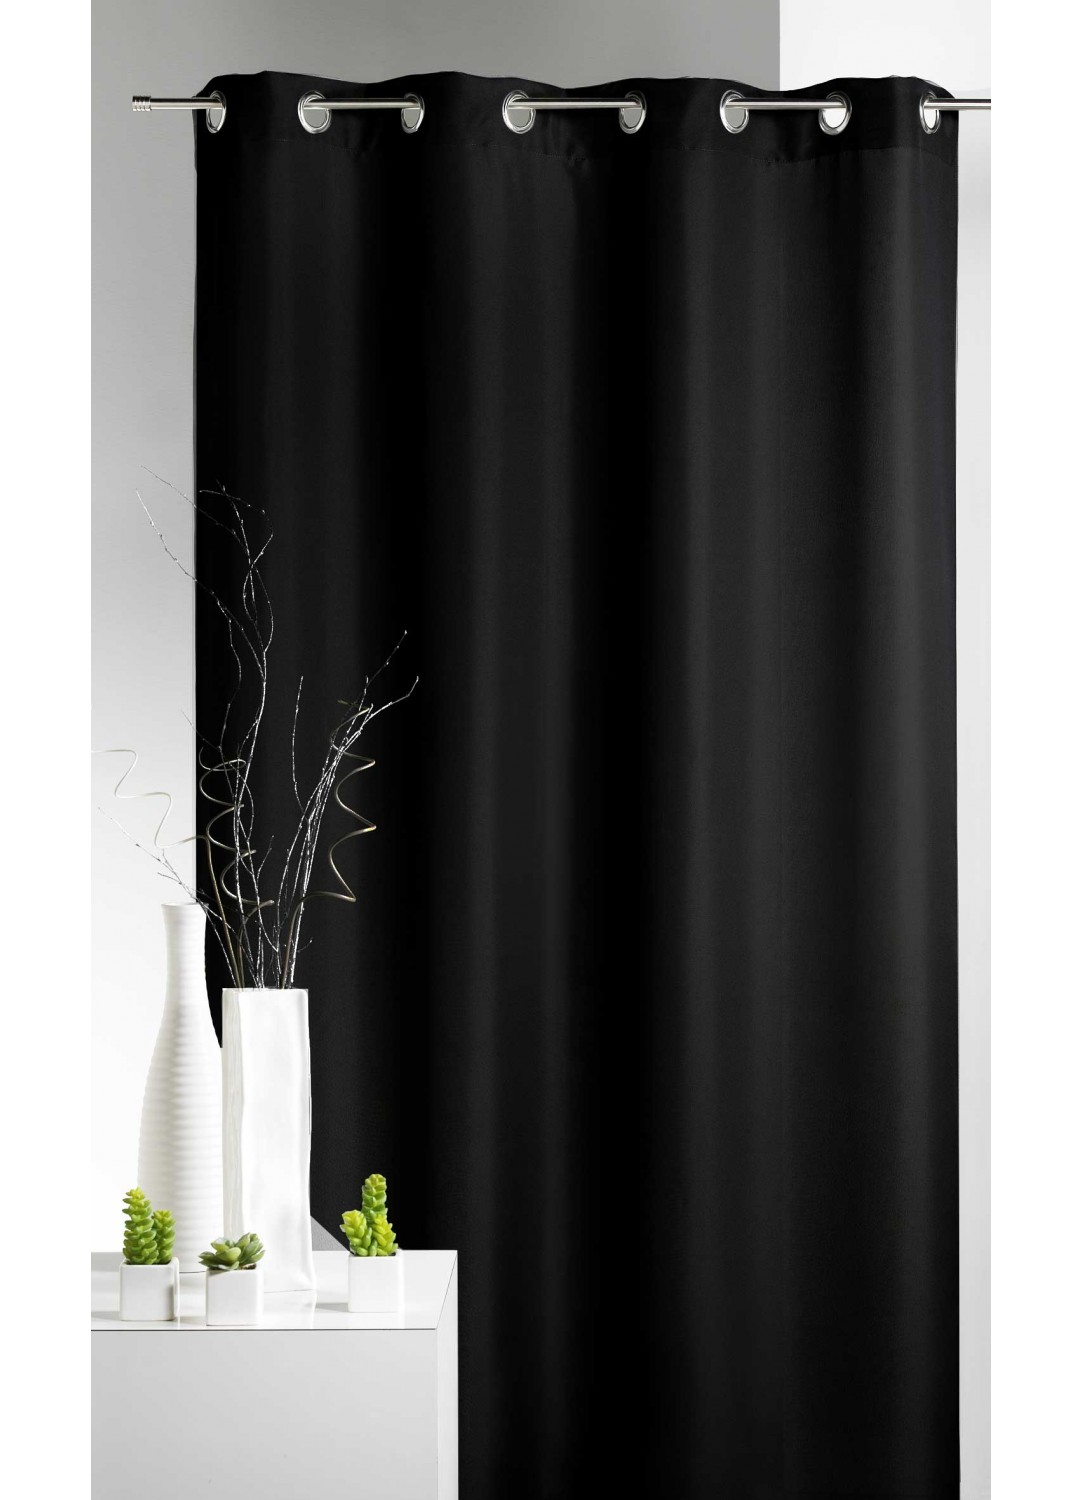 double rideaux occultant ikea ikea rideaux vivan rideaux noirs x cm with double rideaux. Black Bedroom Furniture Sets. Home Design Ideas